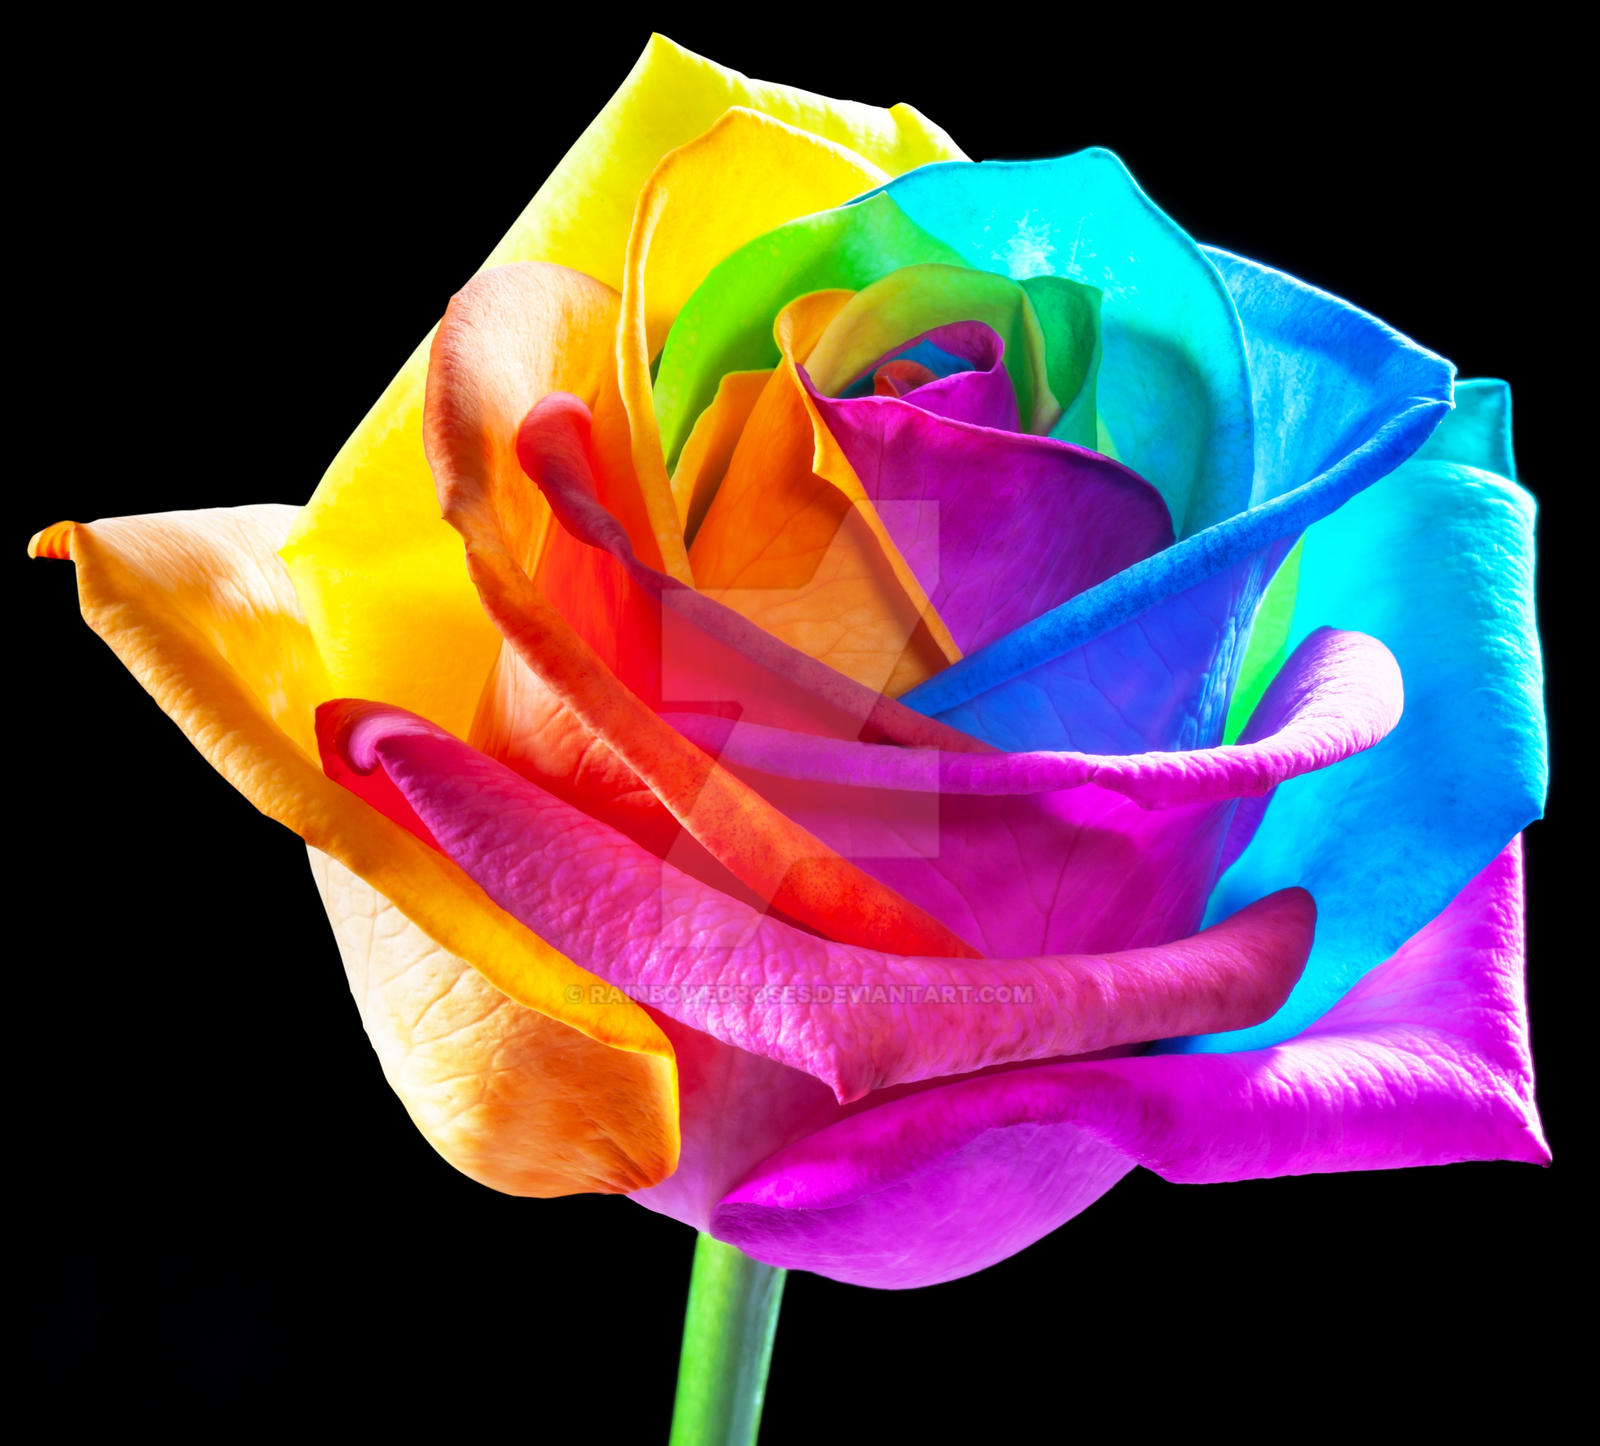 Rainbowedroses in hd perfection by rainbowedroses on for Where to buy rainbow roses